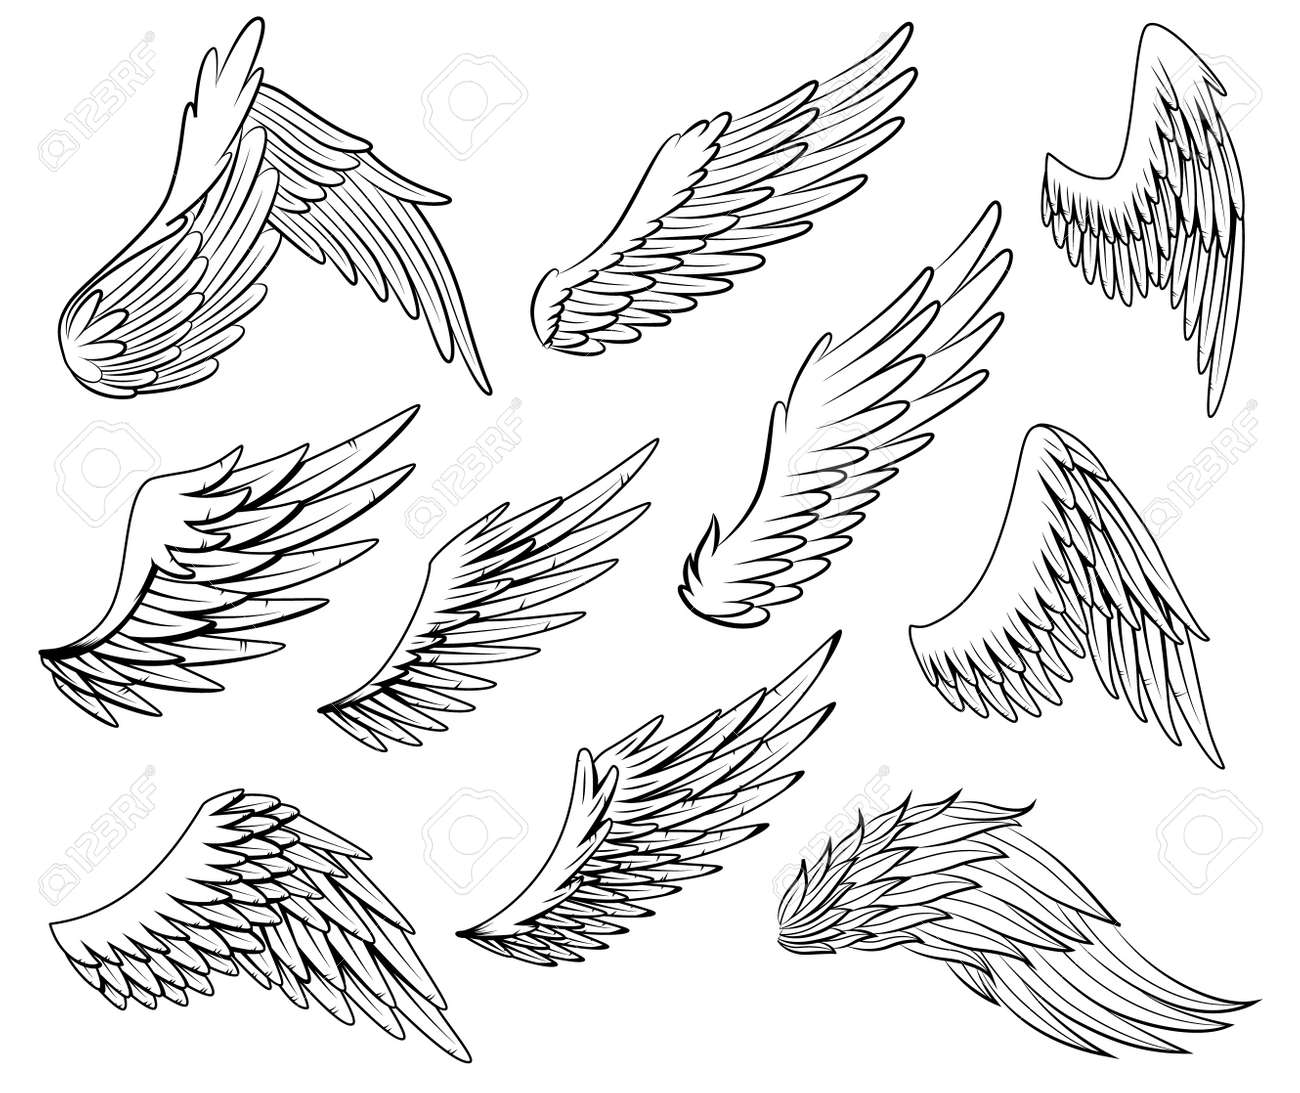 Collection of vintage heraldic wings sketch. Monochrome stylized birds wings. Hand drawn contoured stiker wing in open position. Design elements in coloring style - 167532458